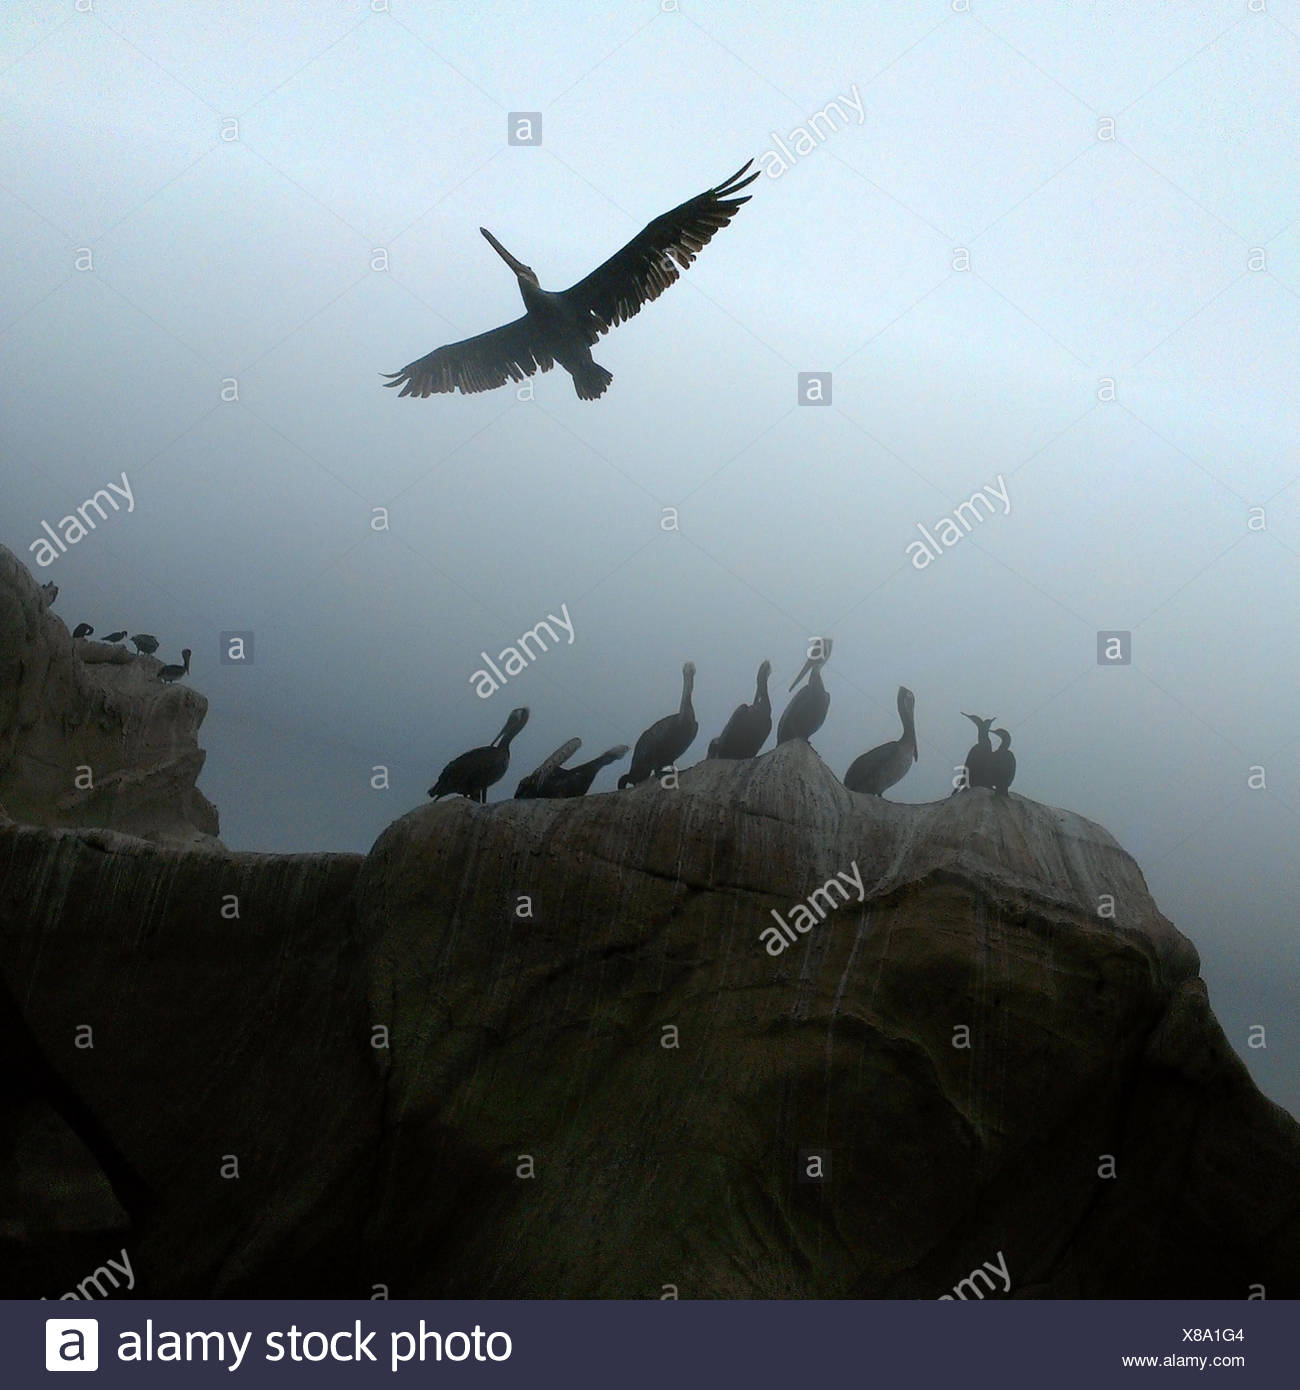 Pelicans in mist, California, America, USA - Stock Image